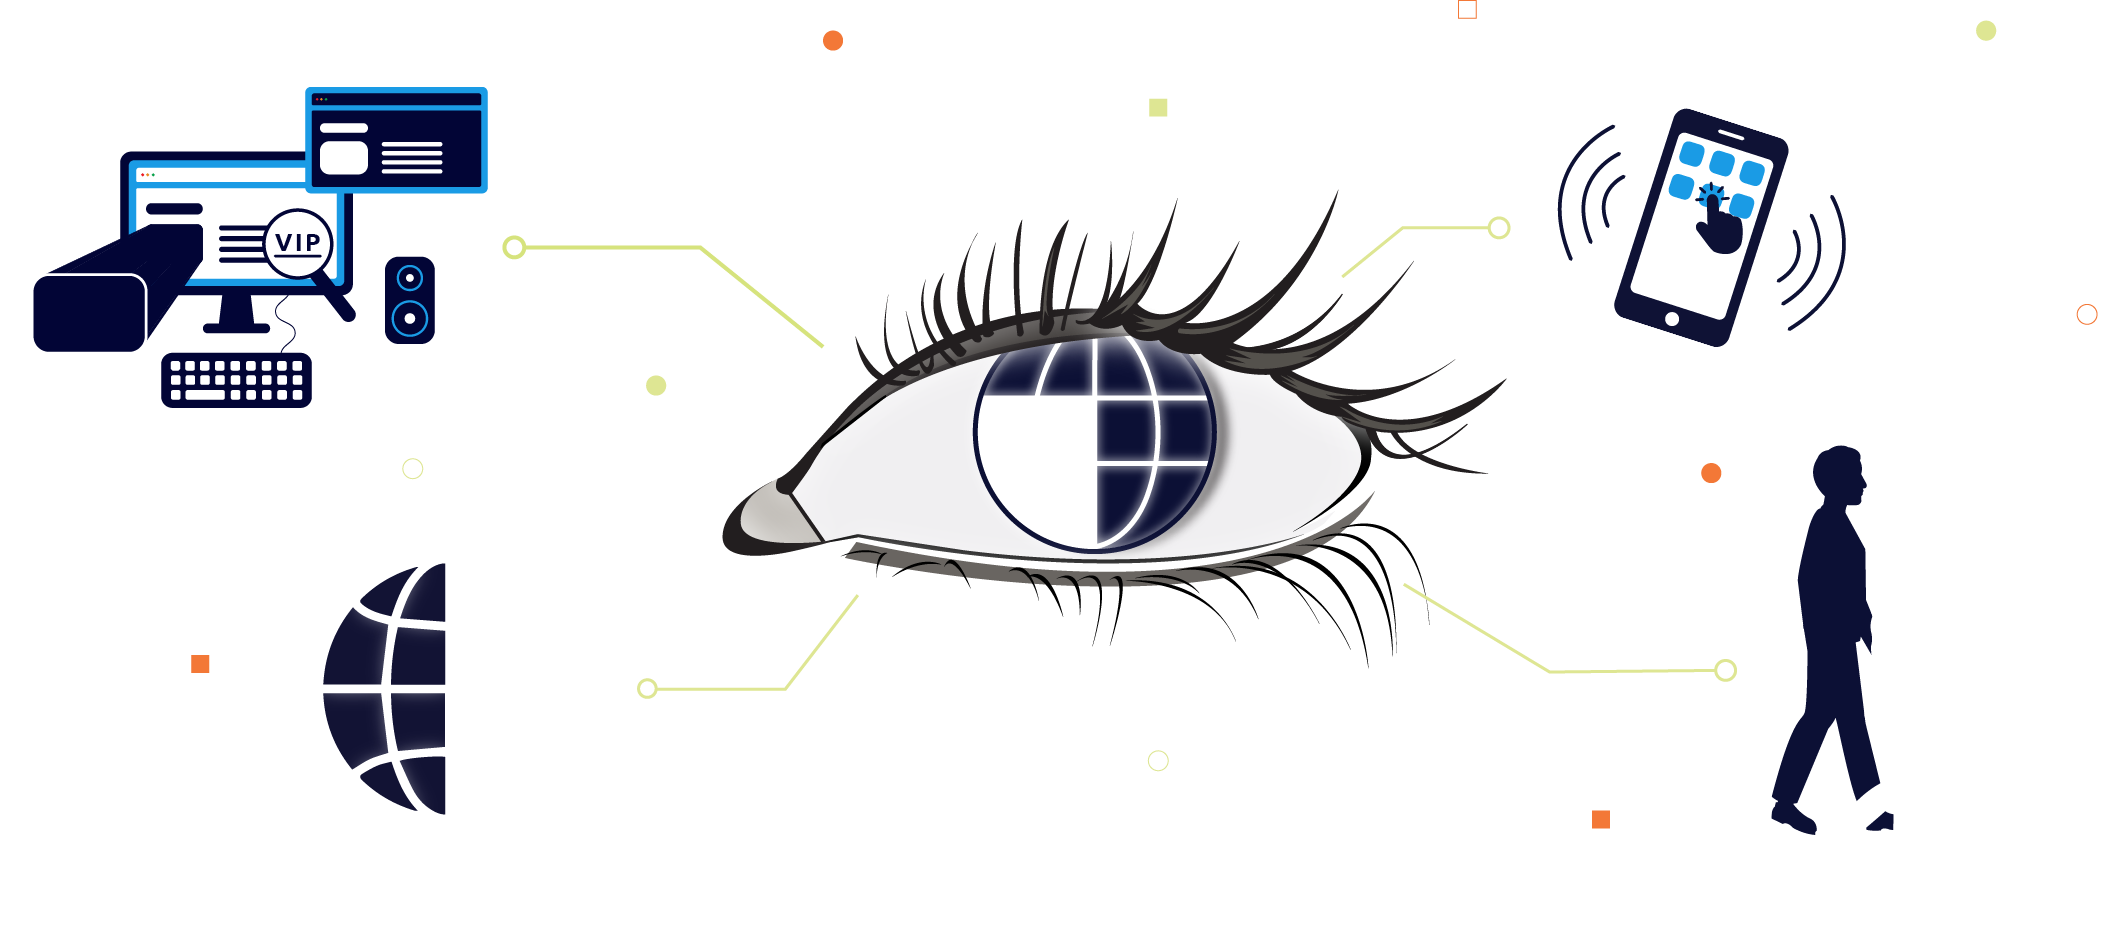 The eye's pupil representing a world where you can access technology to make life easier